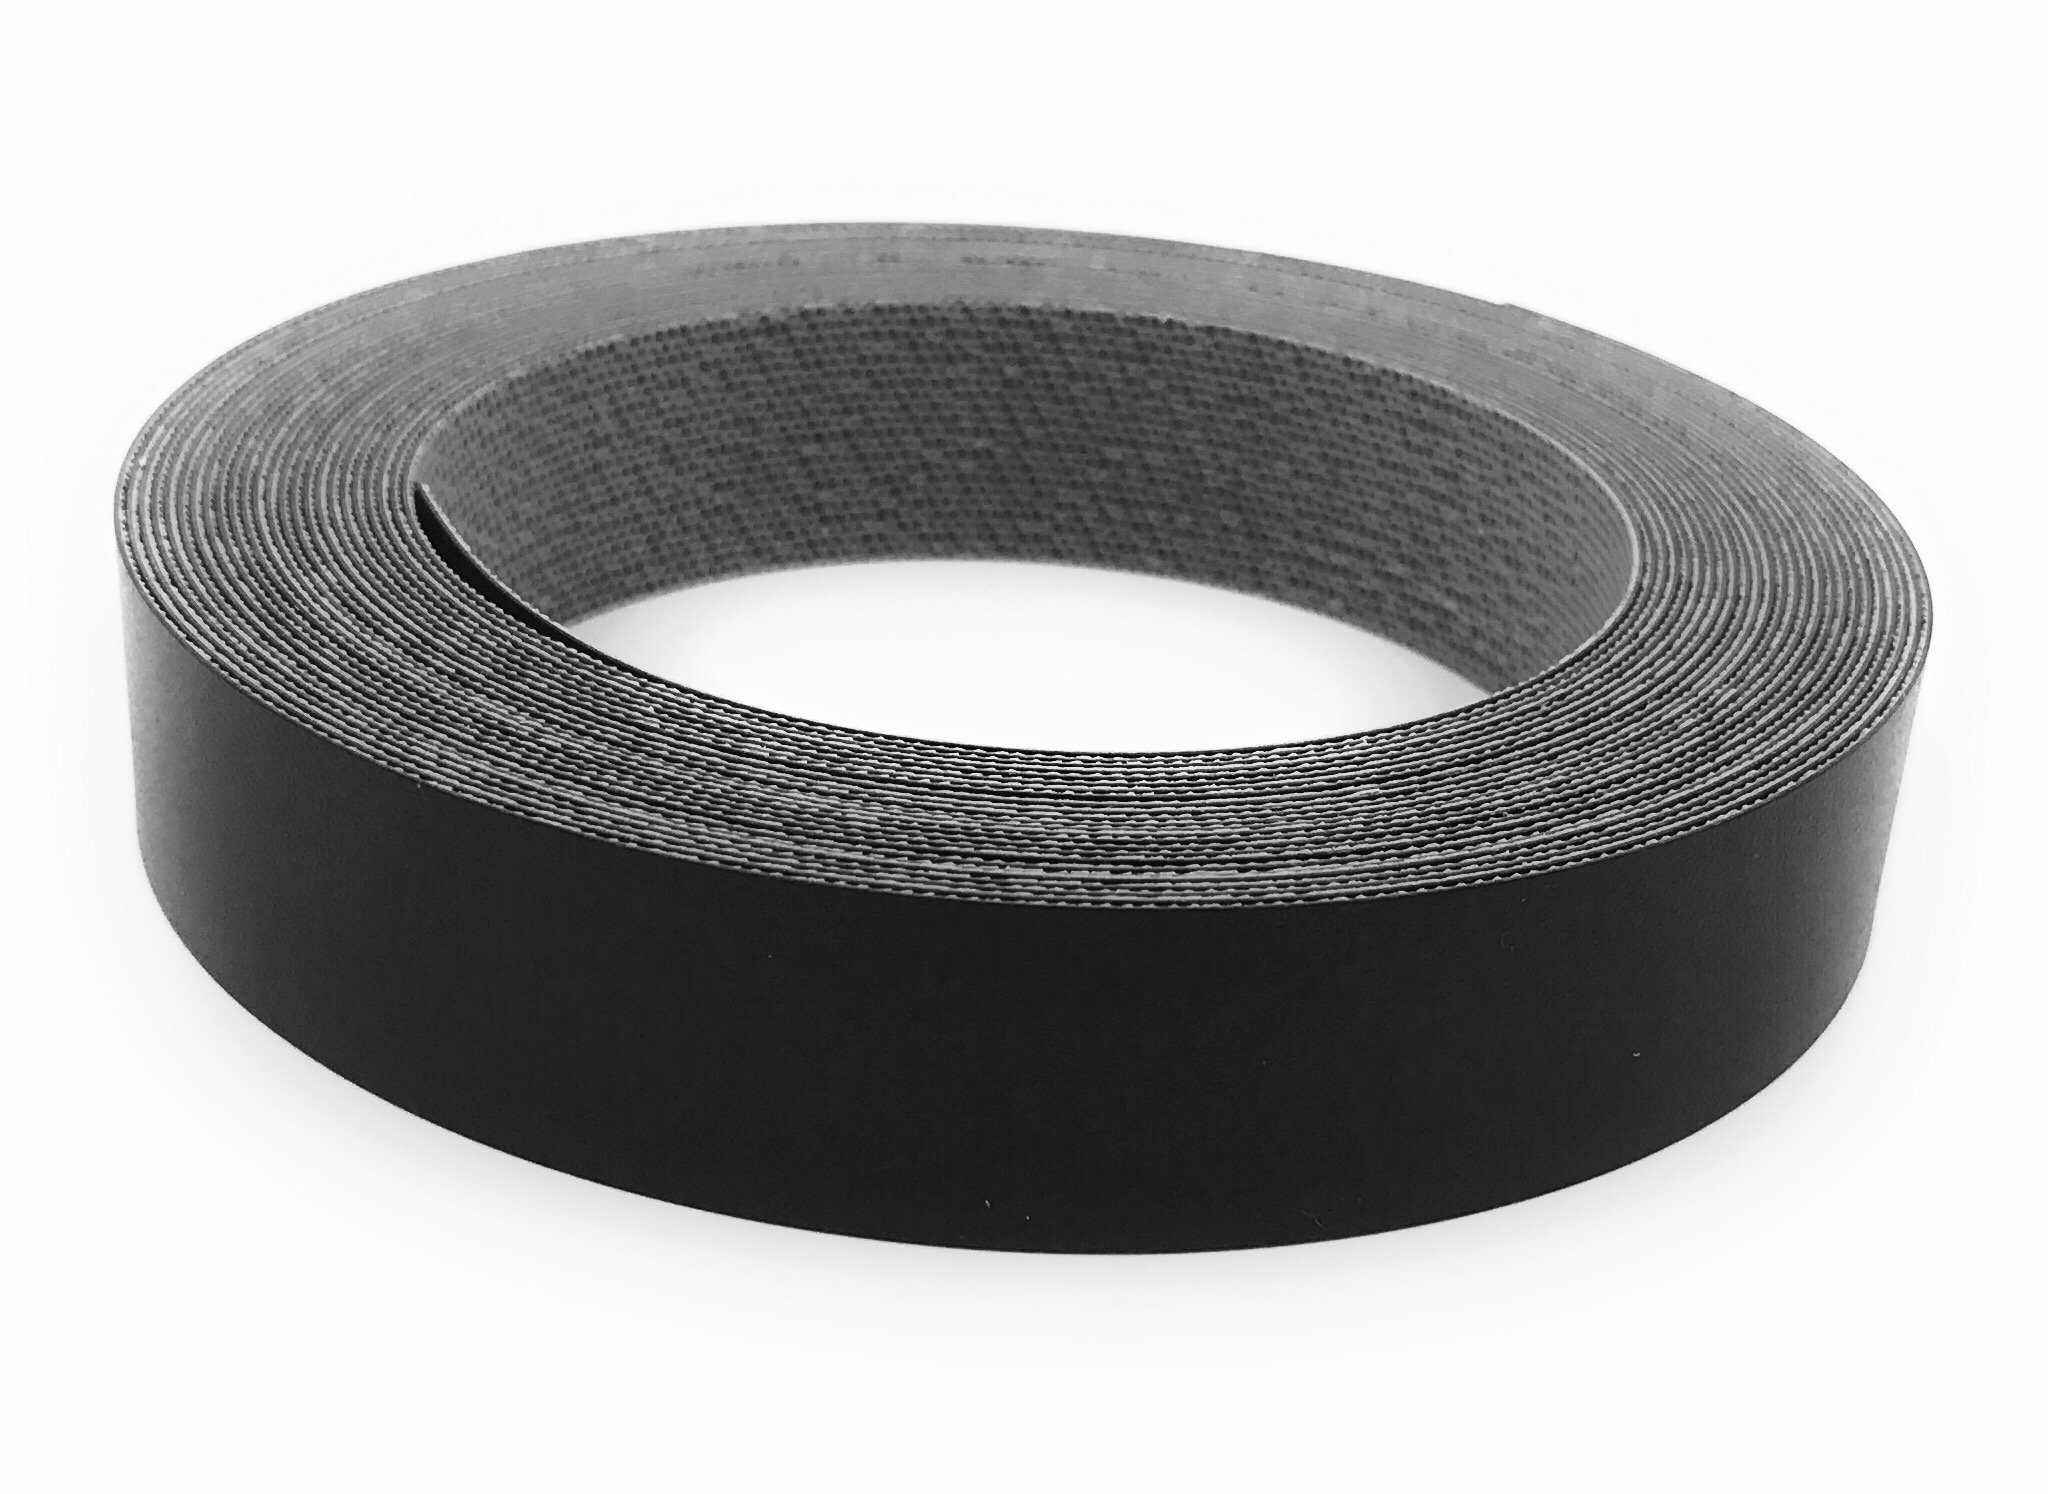 Black PVC 7/8'' X 25' Preglued Roll, Edge banding, Flexible and Strong Tape, Easy Application Iron On with Hot Melt Adhesive. Made In USA.